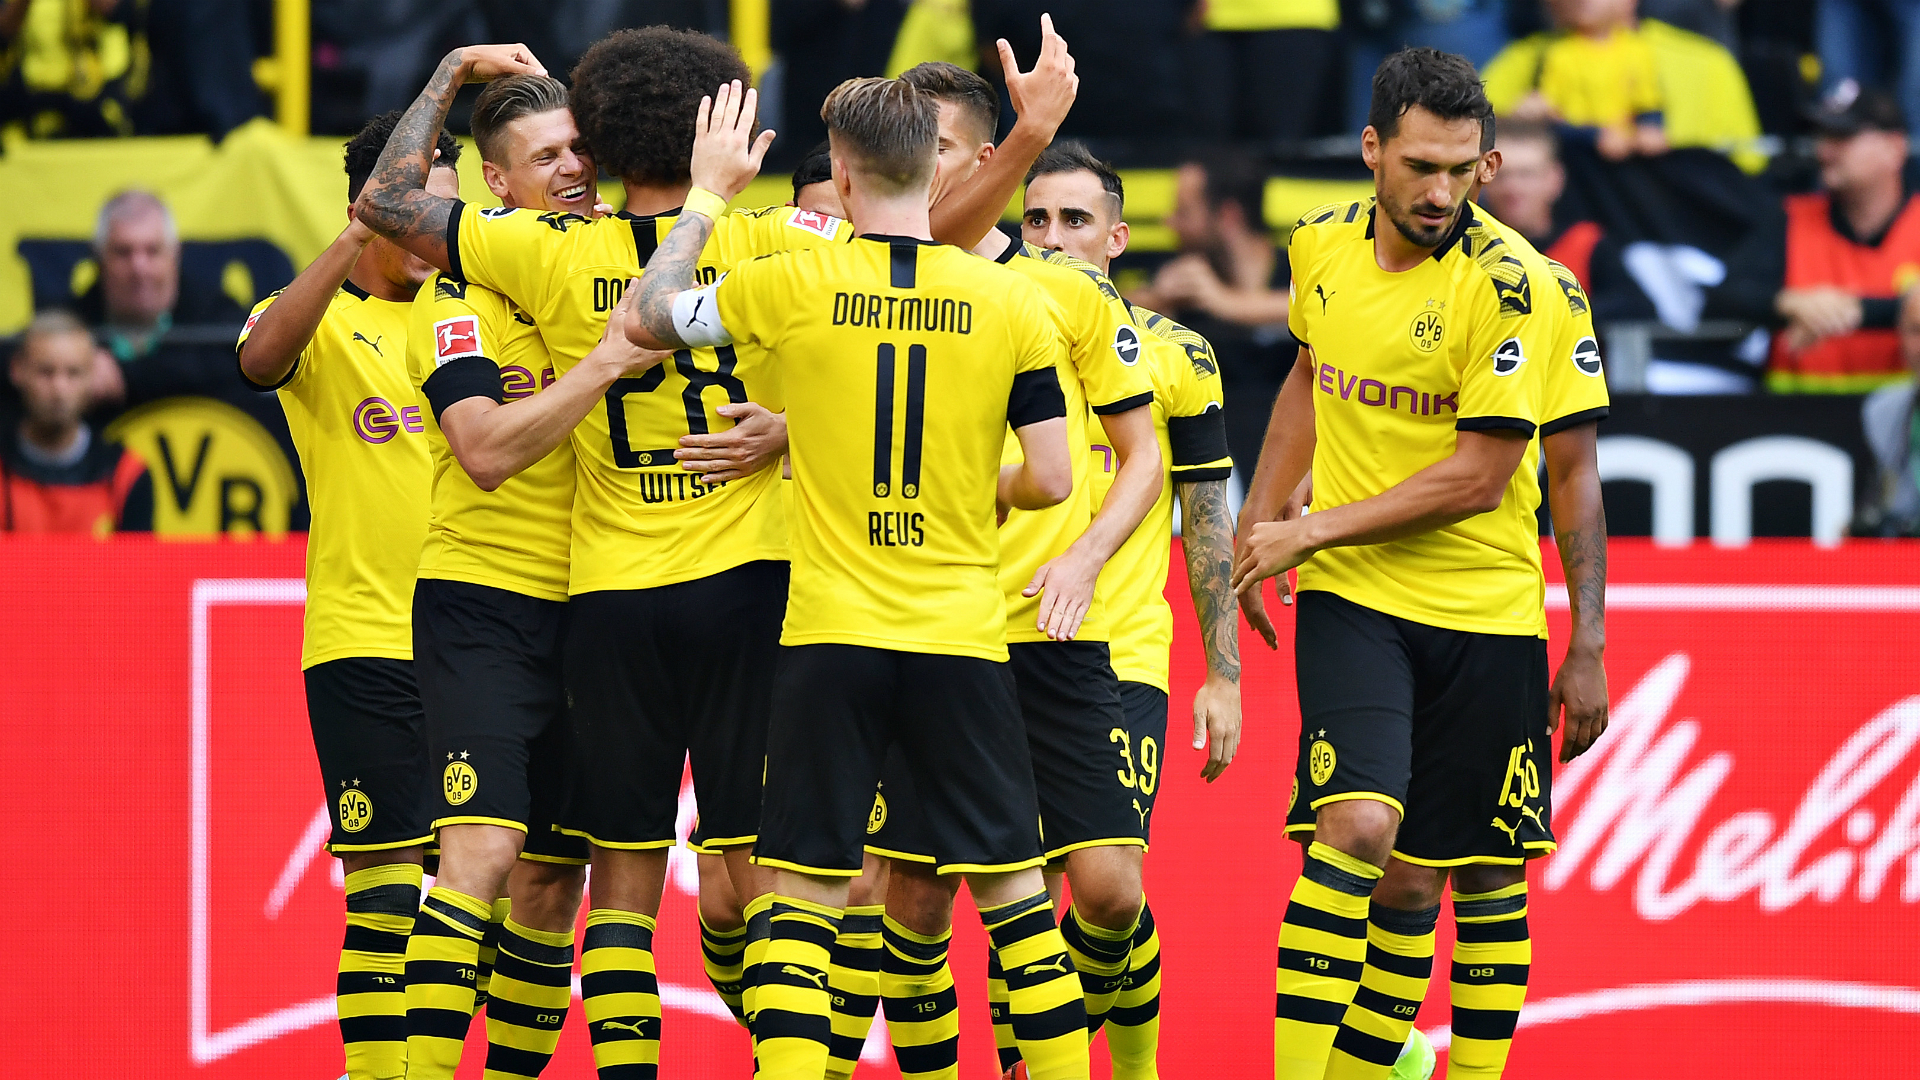 Dortmund want to get better every day – Favre eyes improvement despite 5-1 rout